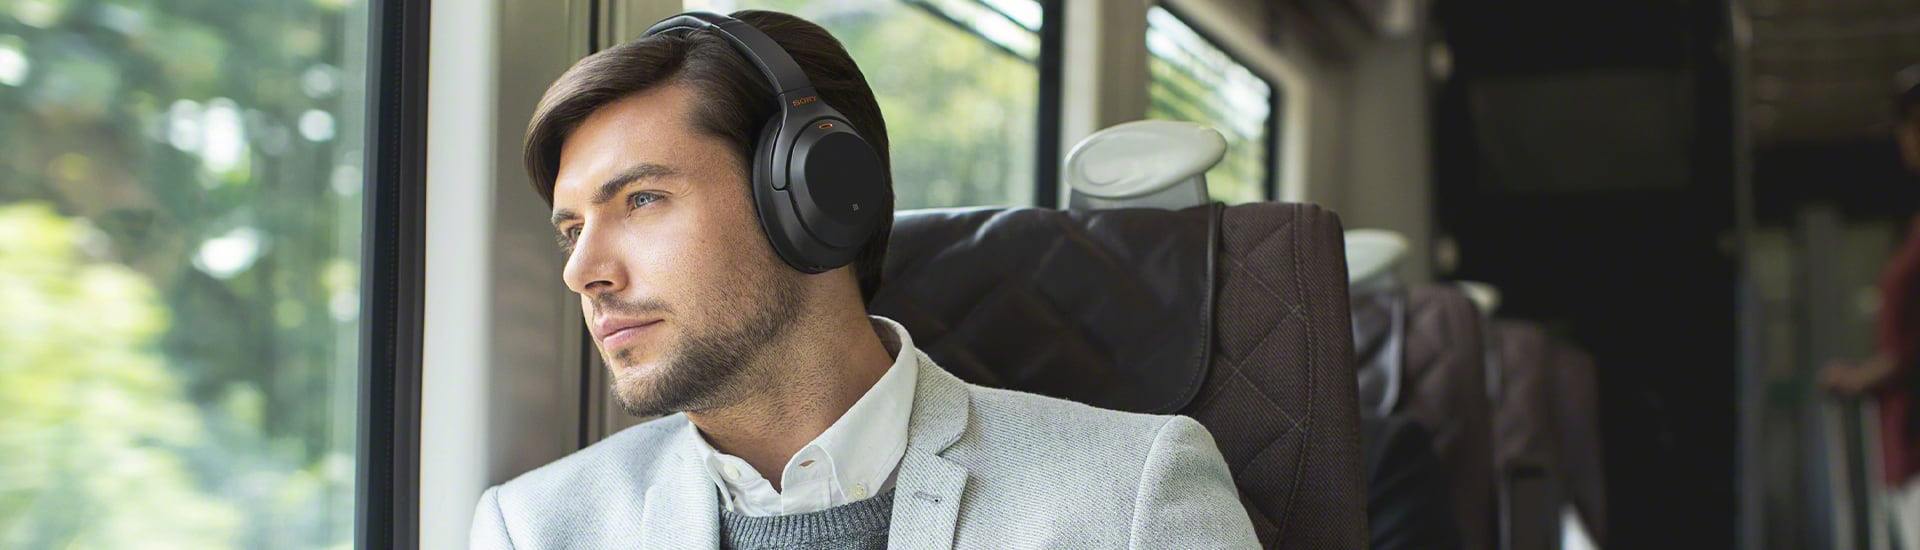 Review: Sony WH-1000XM3 Noise-Canceling Headphones